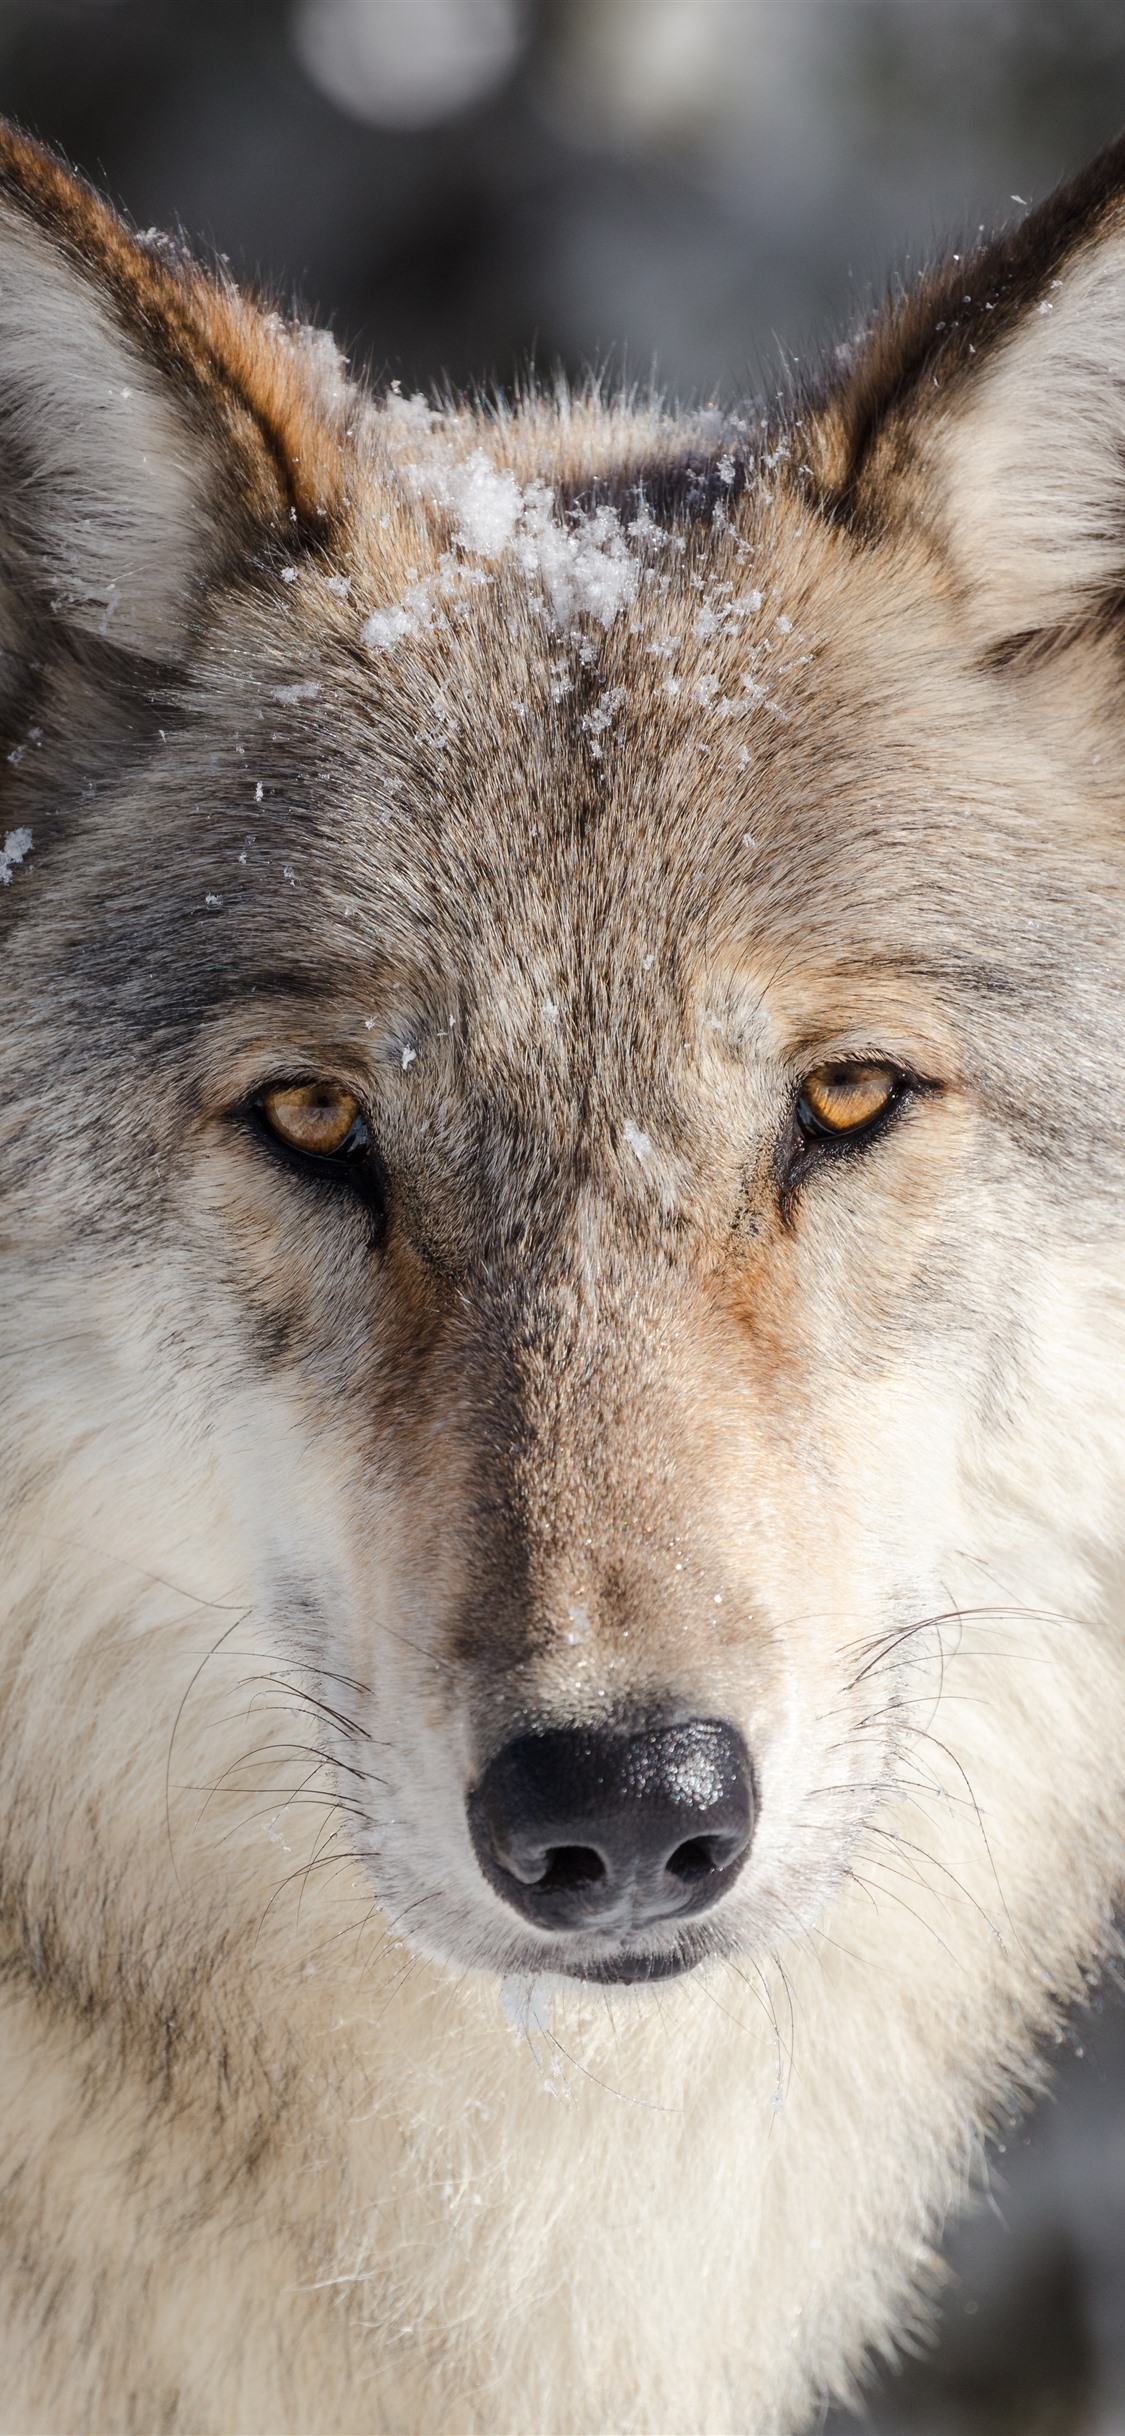 Cute Wallpapers Of All The Animals Wallpaper Wolf Look Front View Face Snow 7680x4320 Uhd